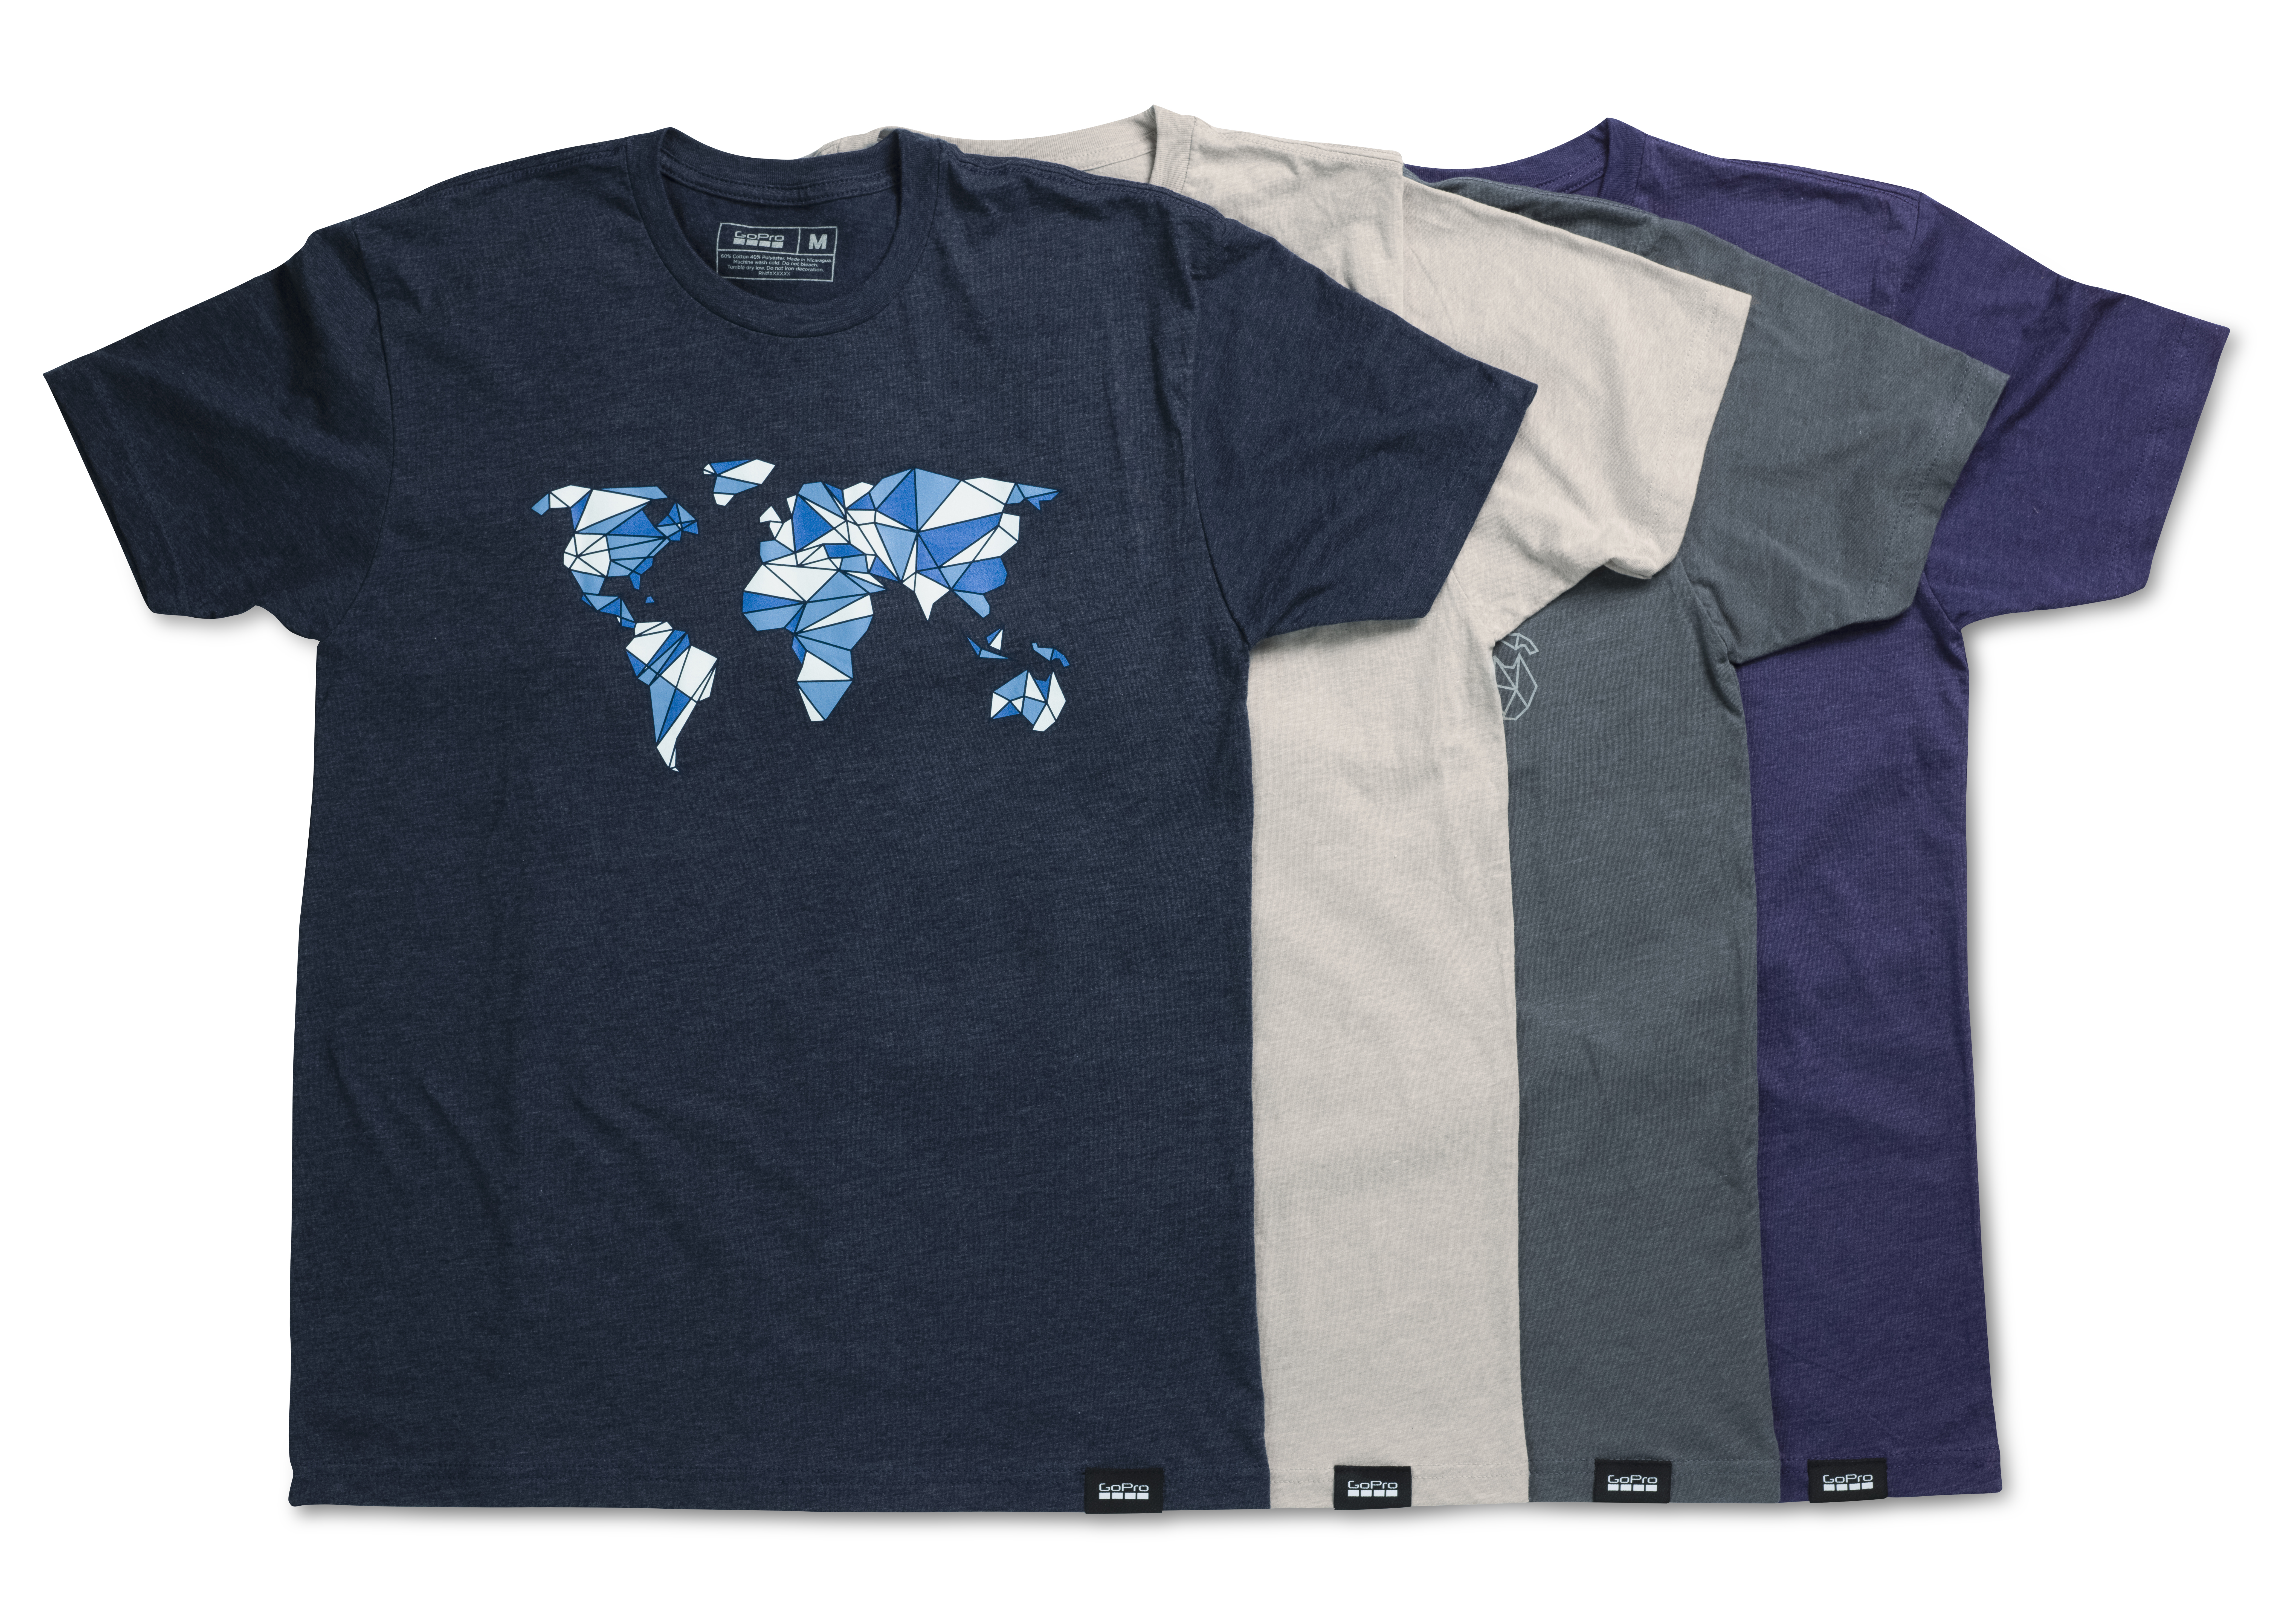 The new lifestyle t-shirts from GoPro.